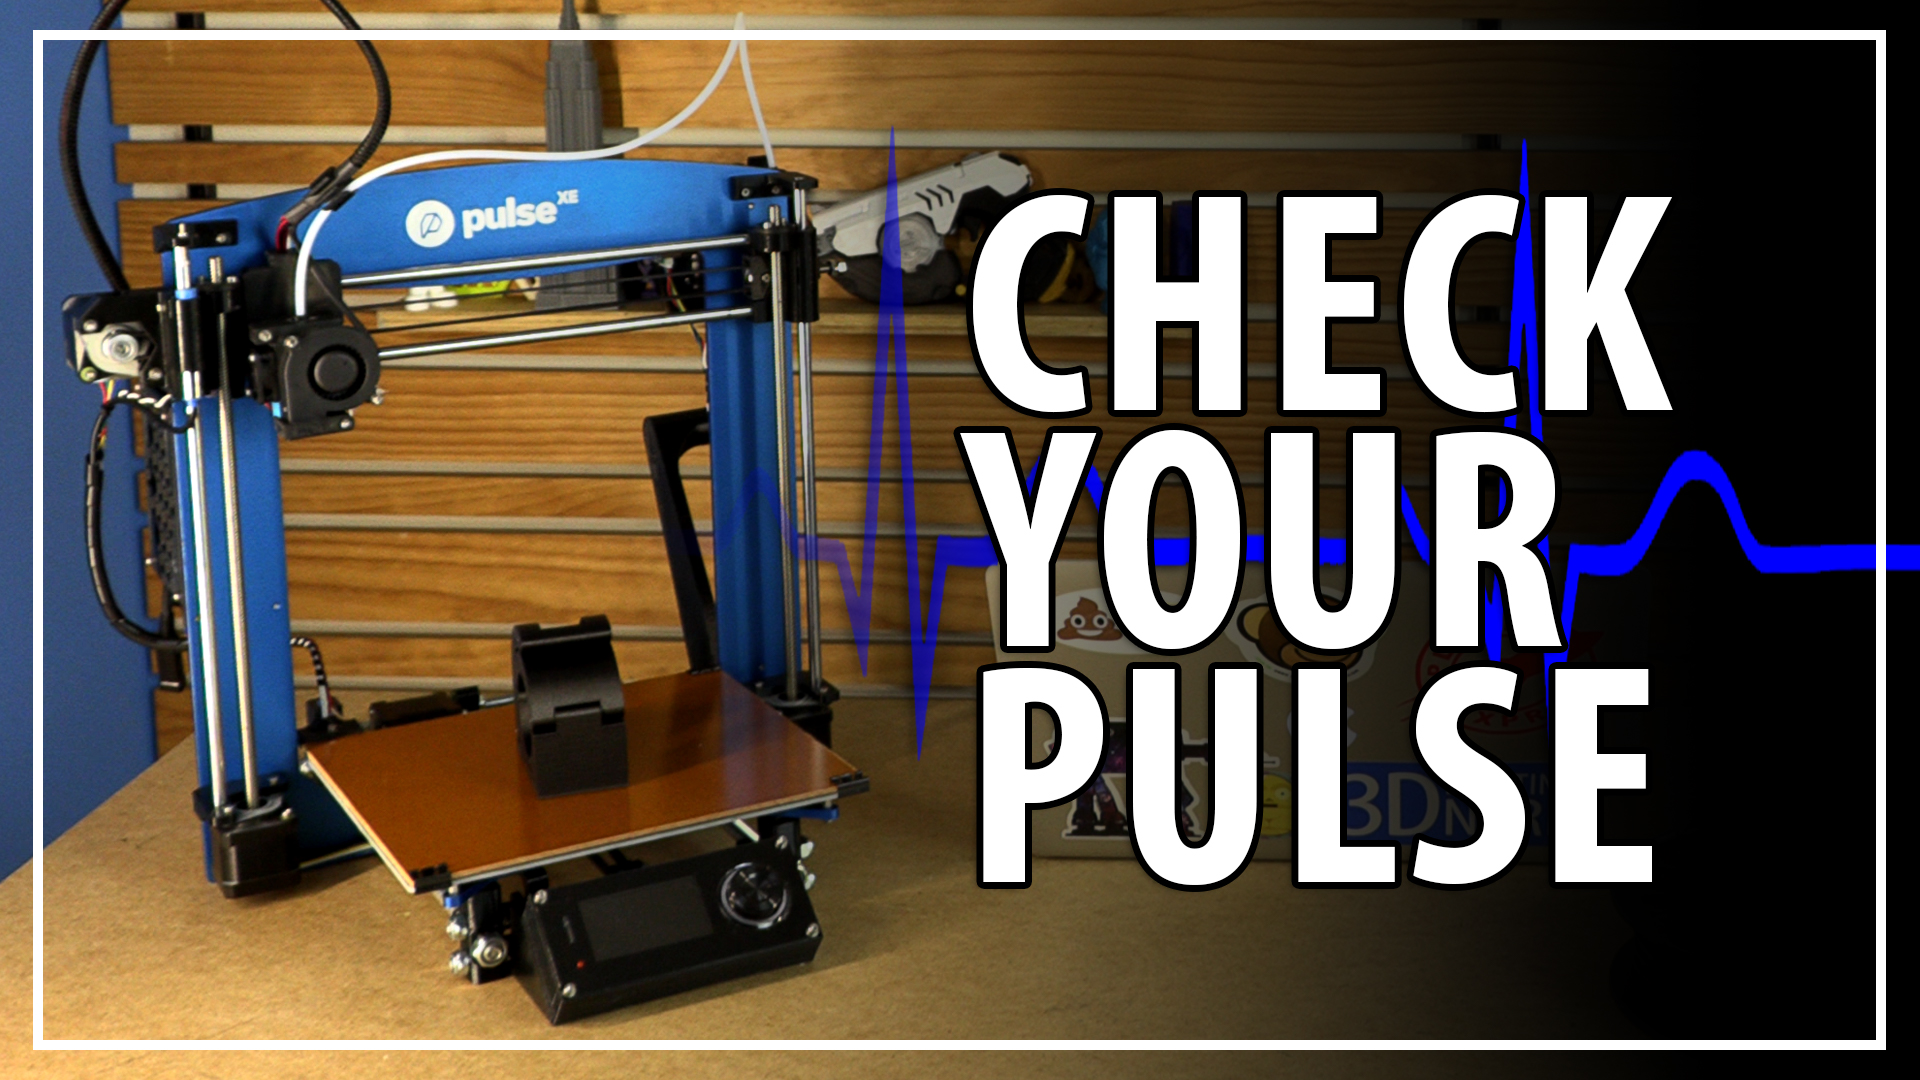 Previewing the Matterhackers Pulse XE 3D Printer w/ NylonX filament